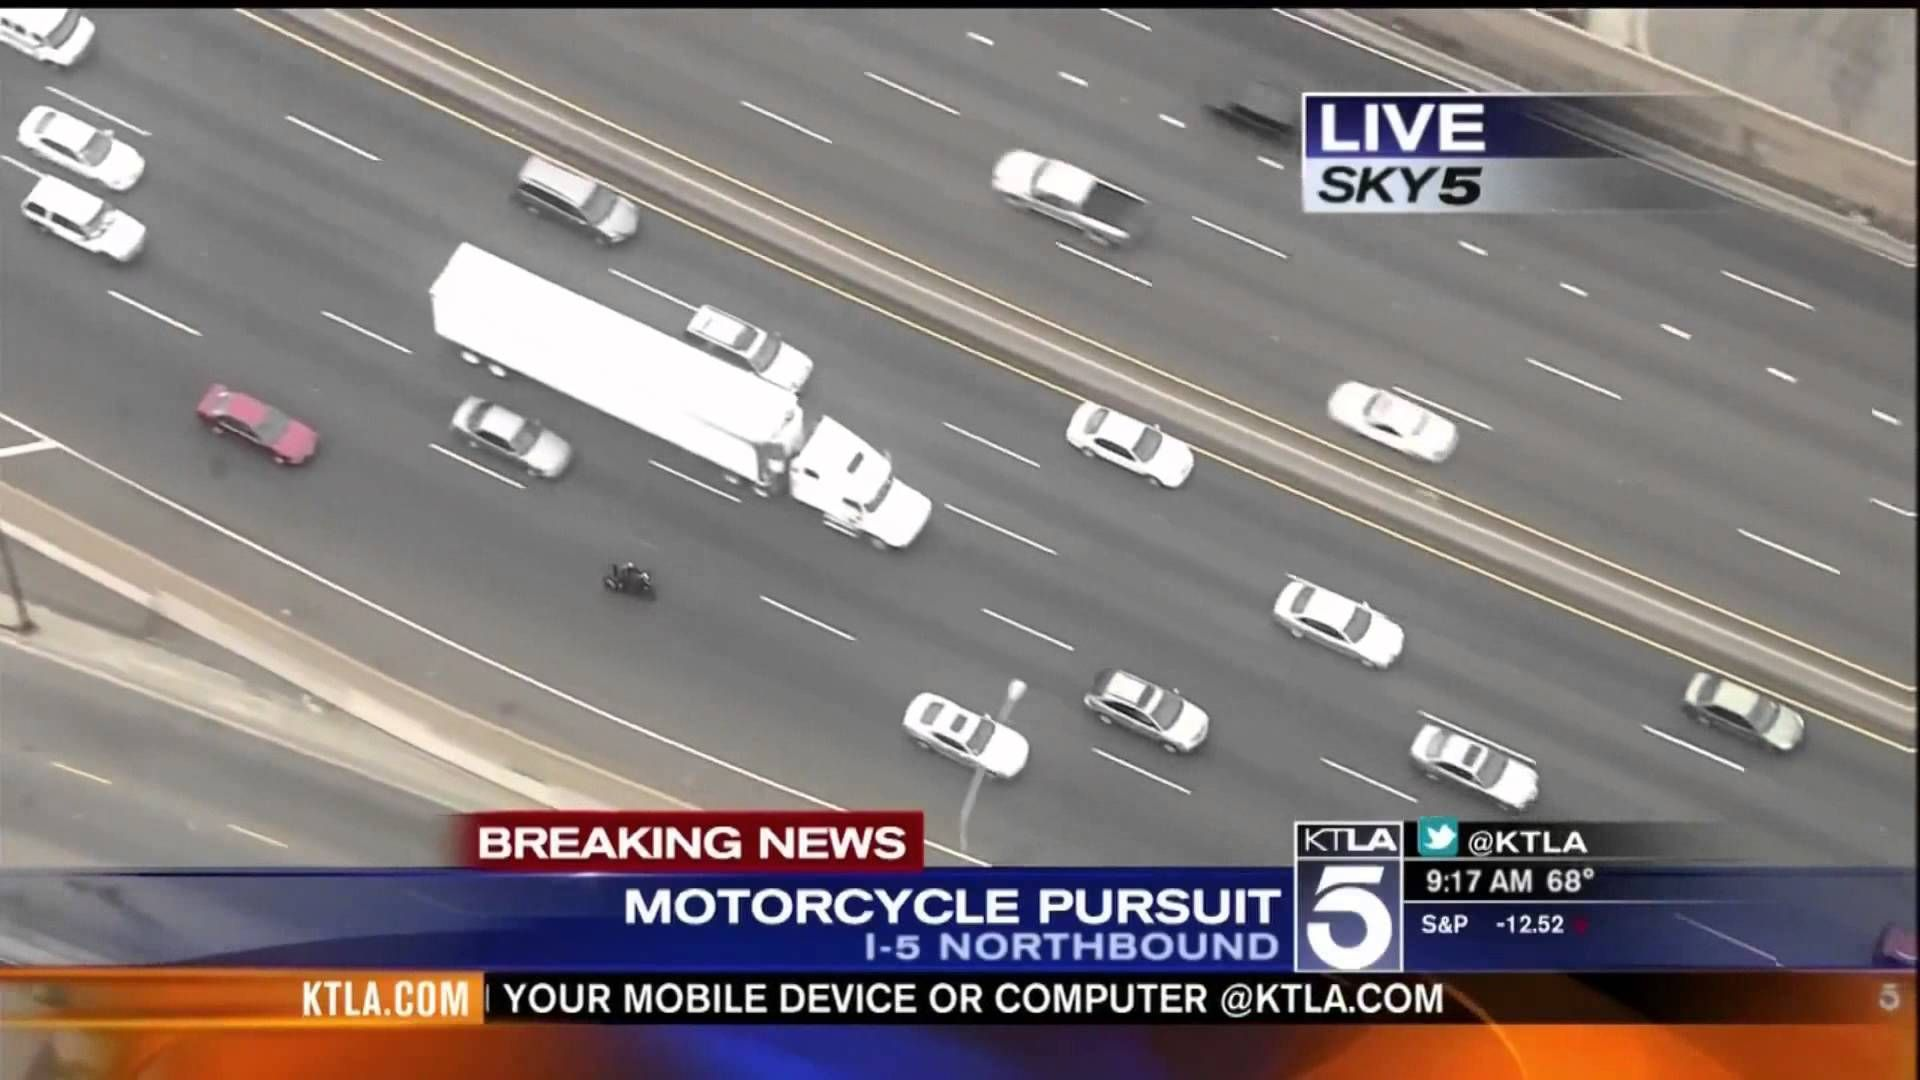 Southern California Police Chase Motorcycle With A Helicopter 140 Mph Police Helicopter Southern California